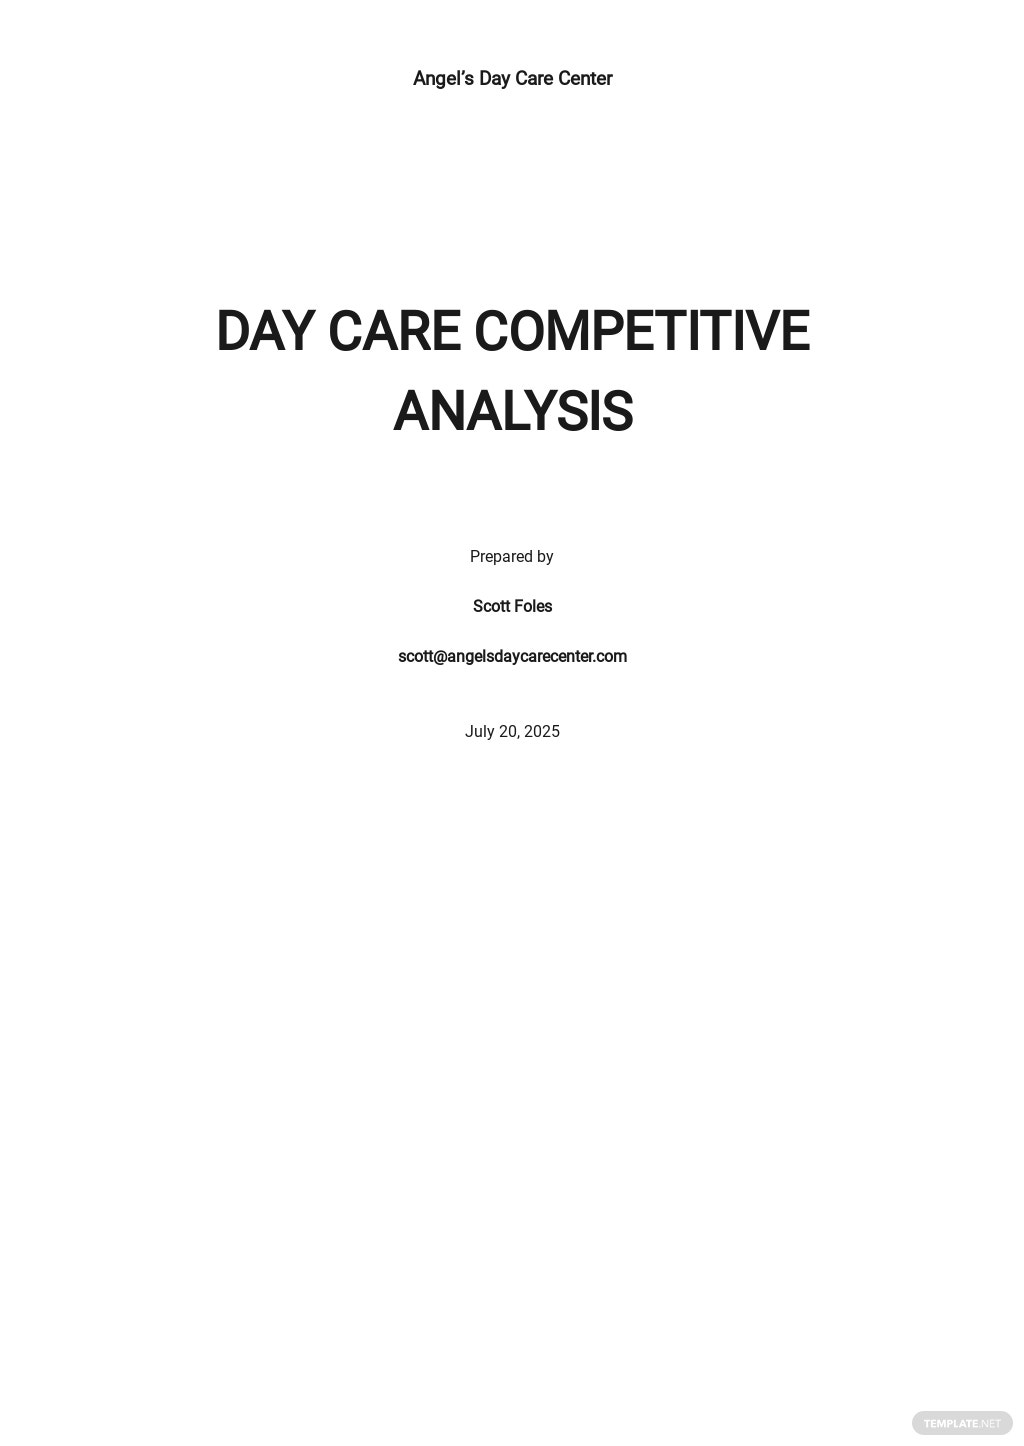 Day Care Competitive Analysis Template